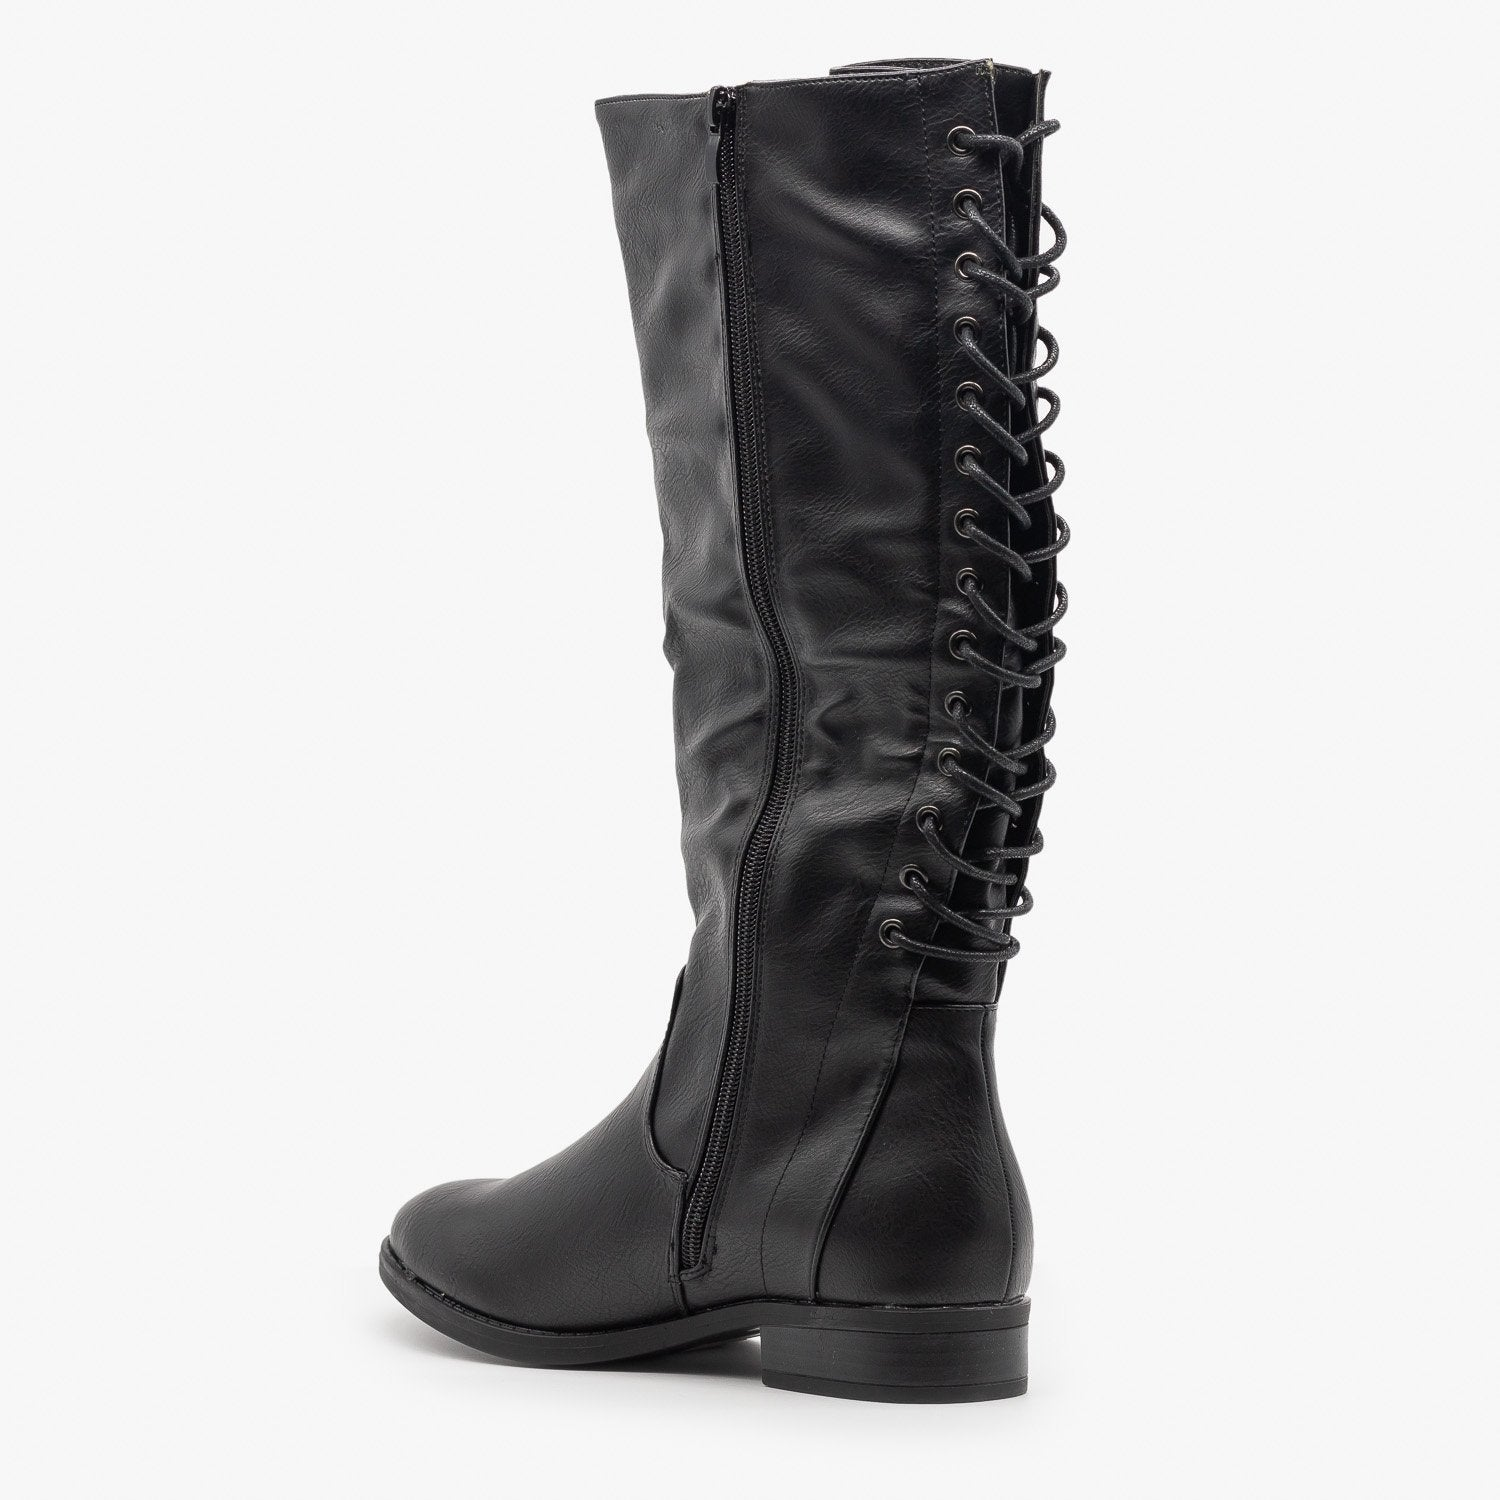 Corset Laced Riding Boots - Fashion